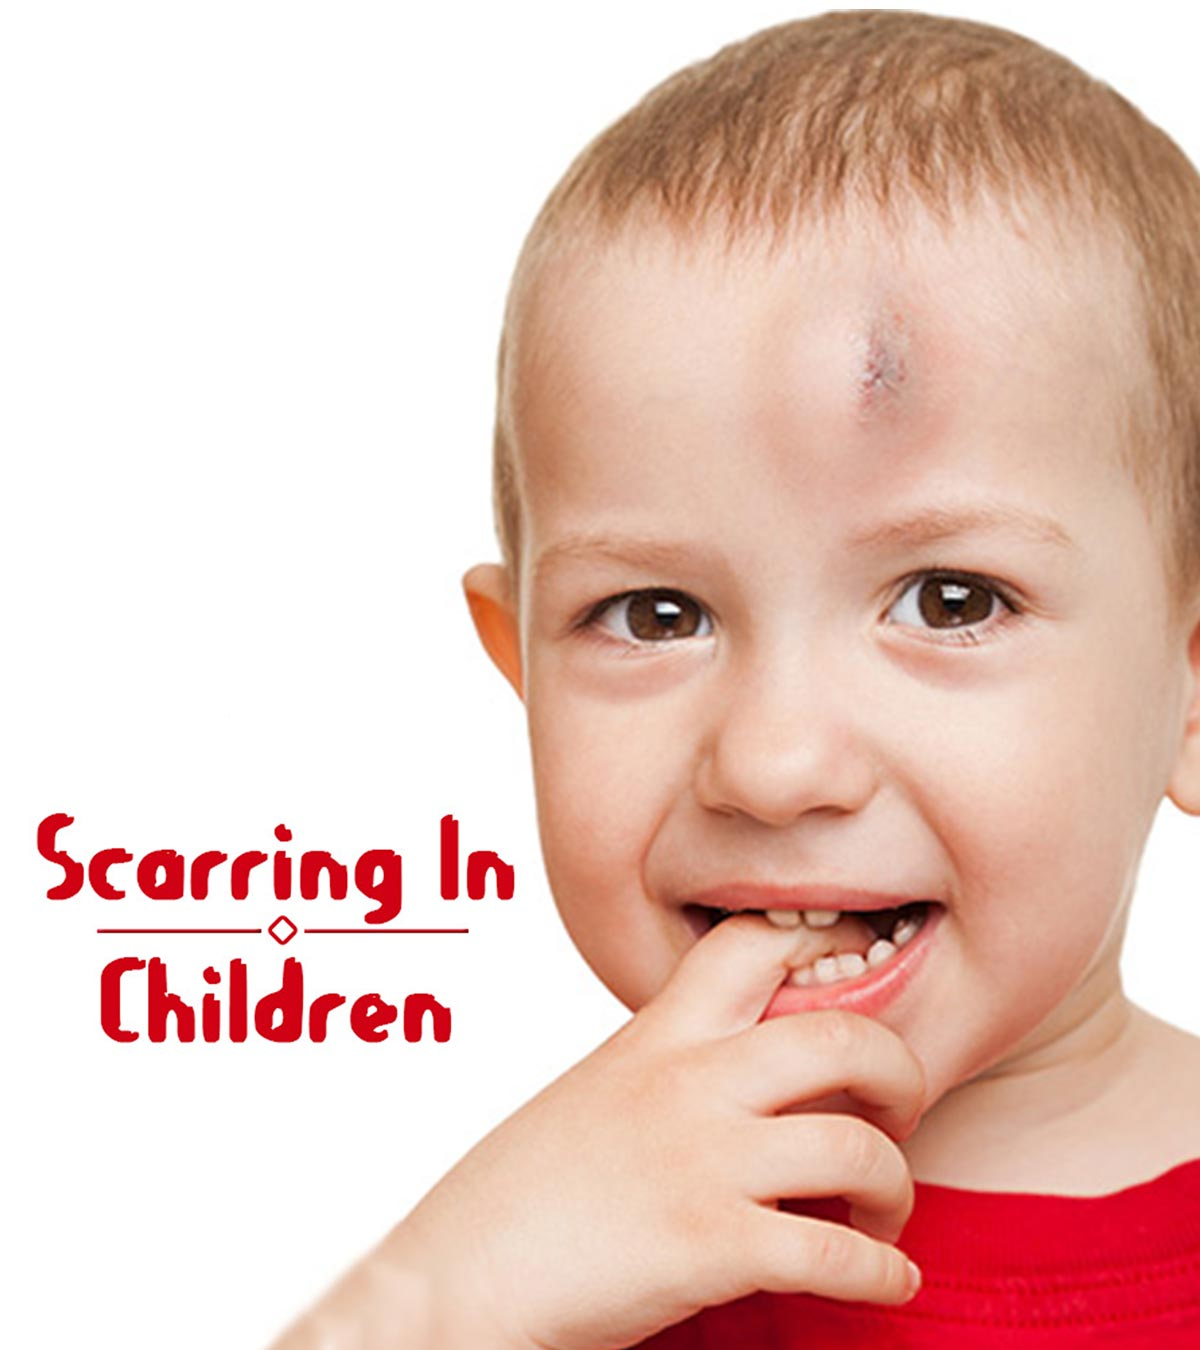 9 Simple Ways To Treat Kids Scars